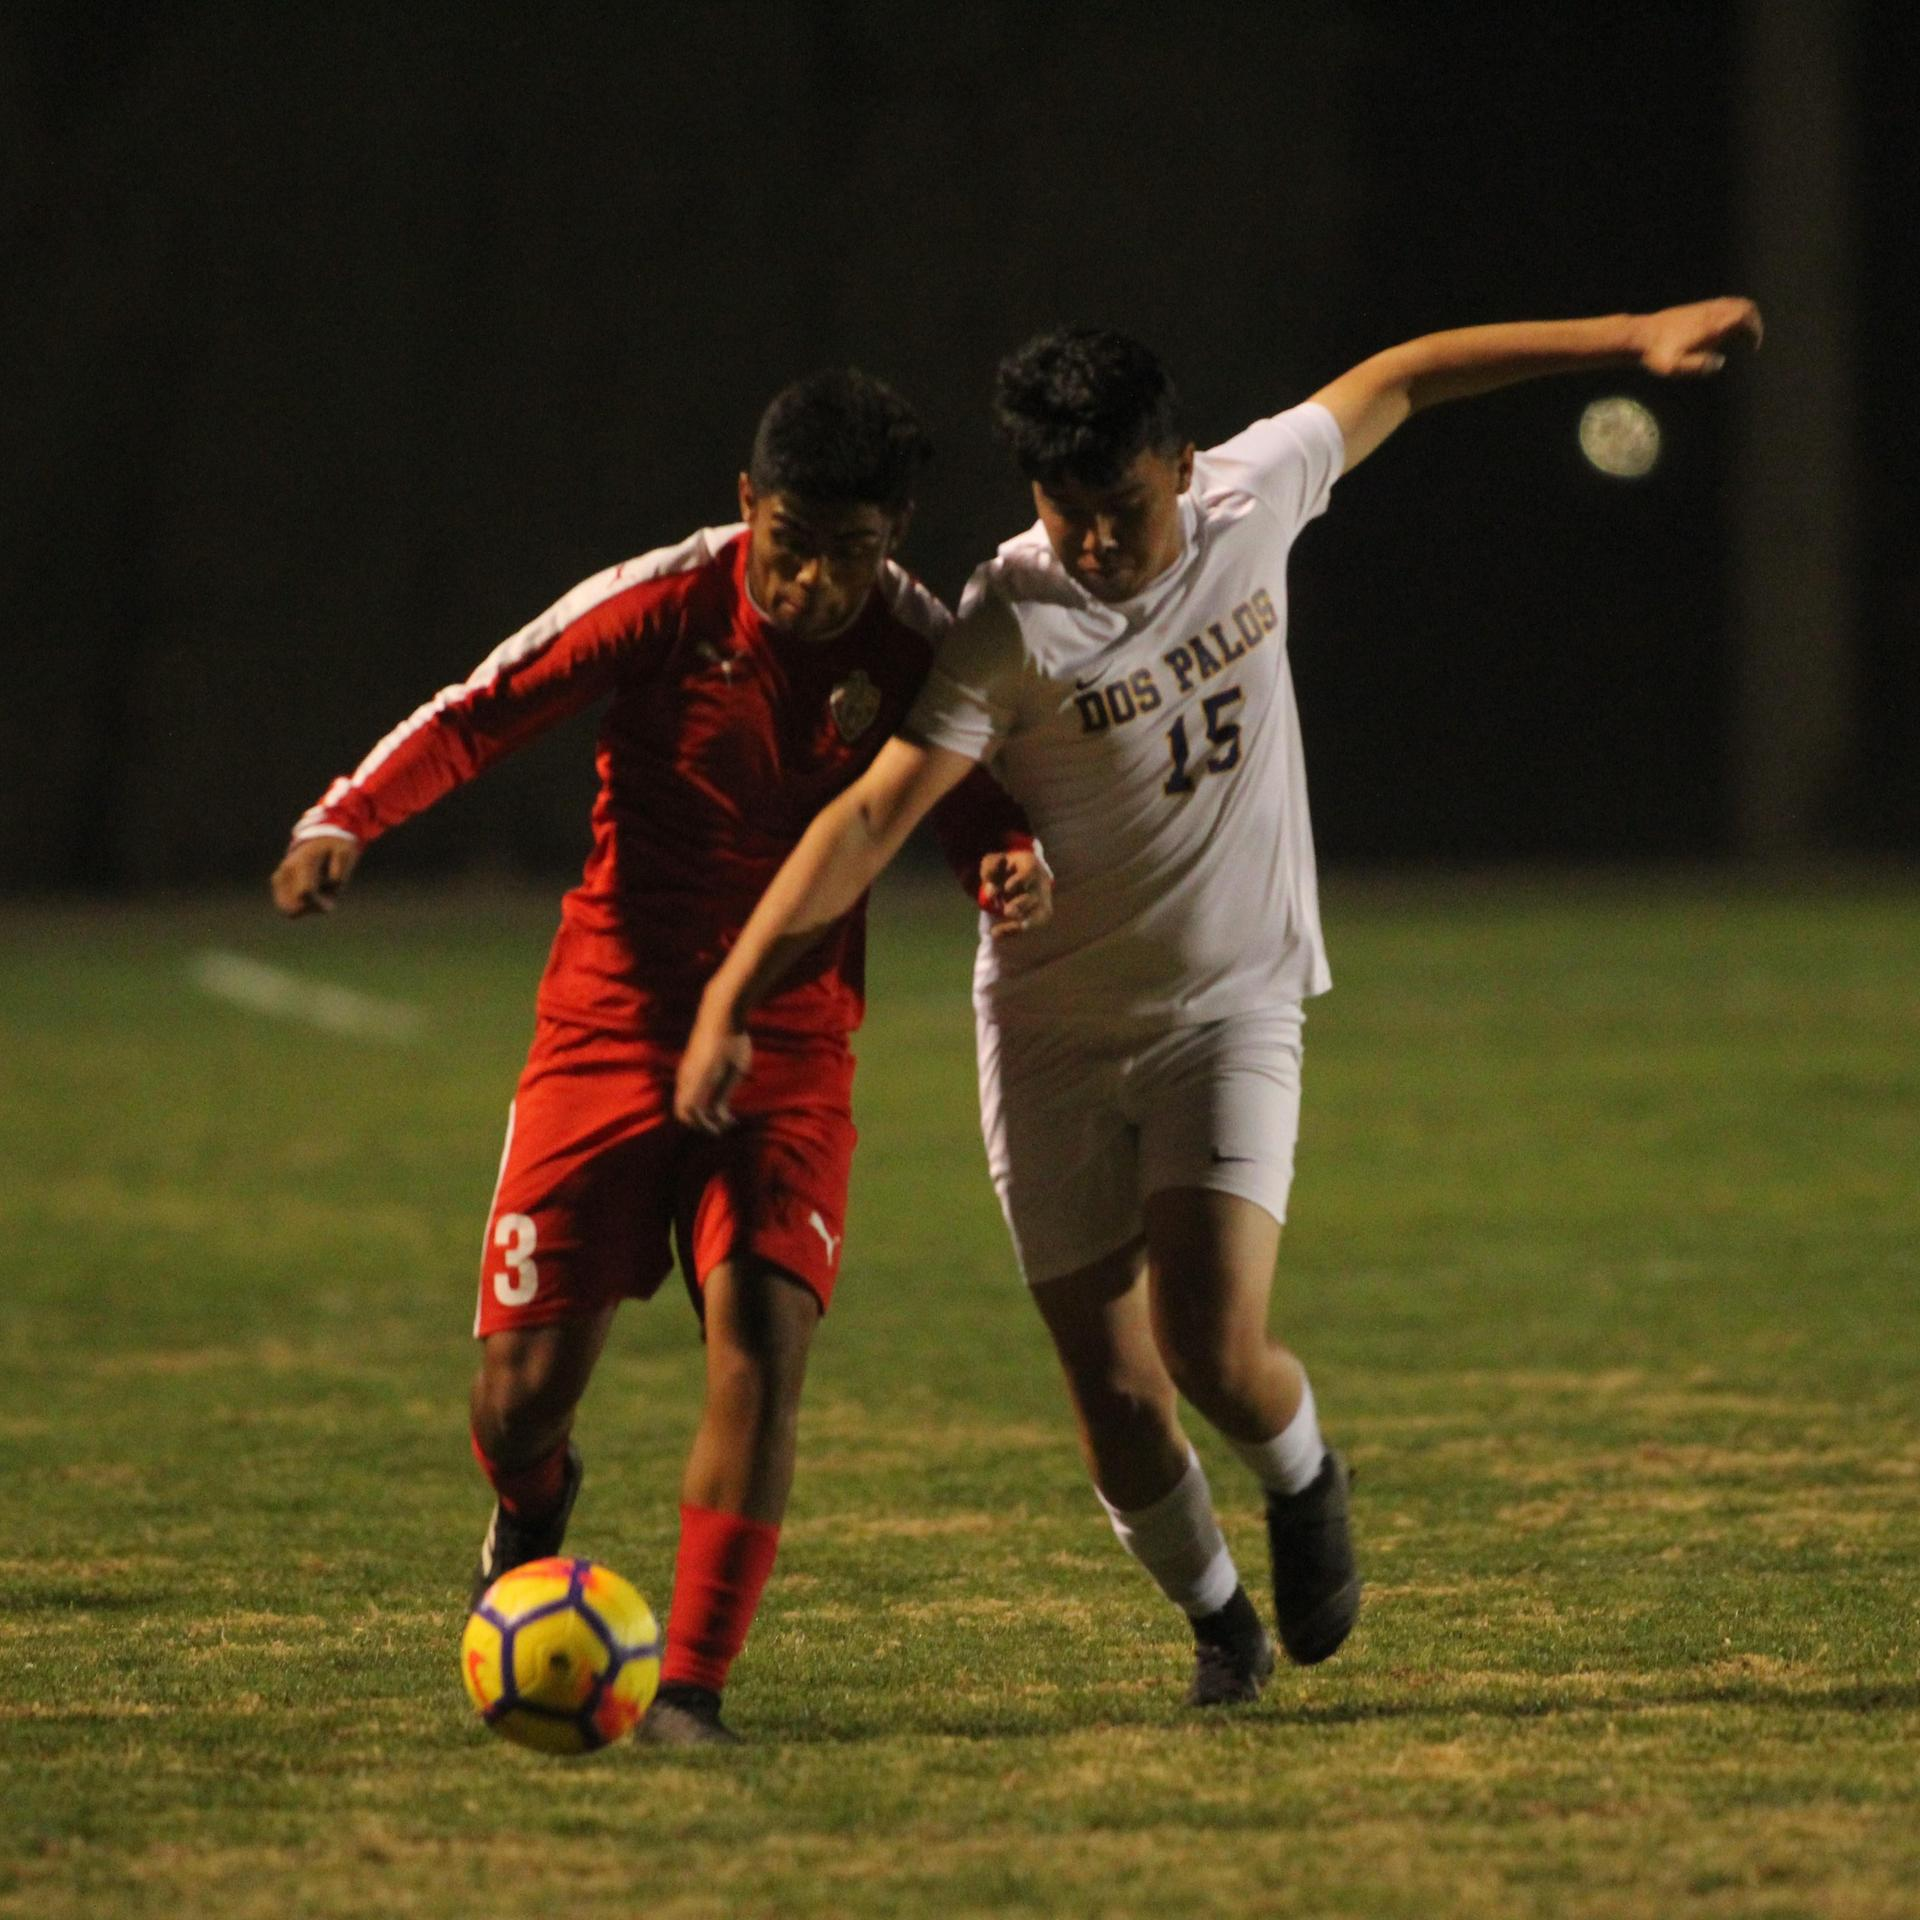 Alejandro Montes Fighting for the Ball